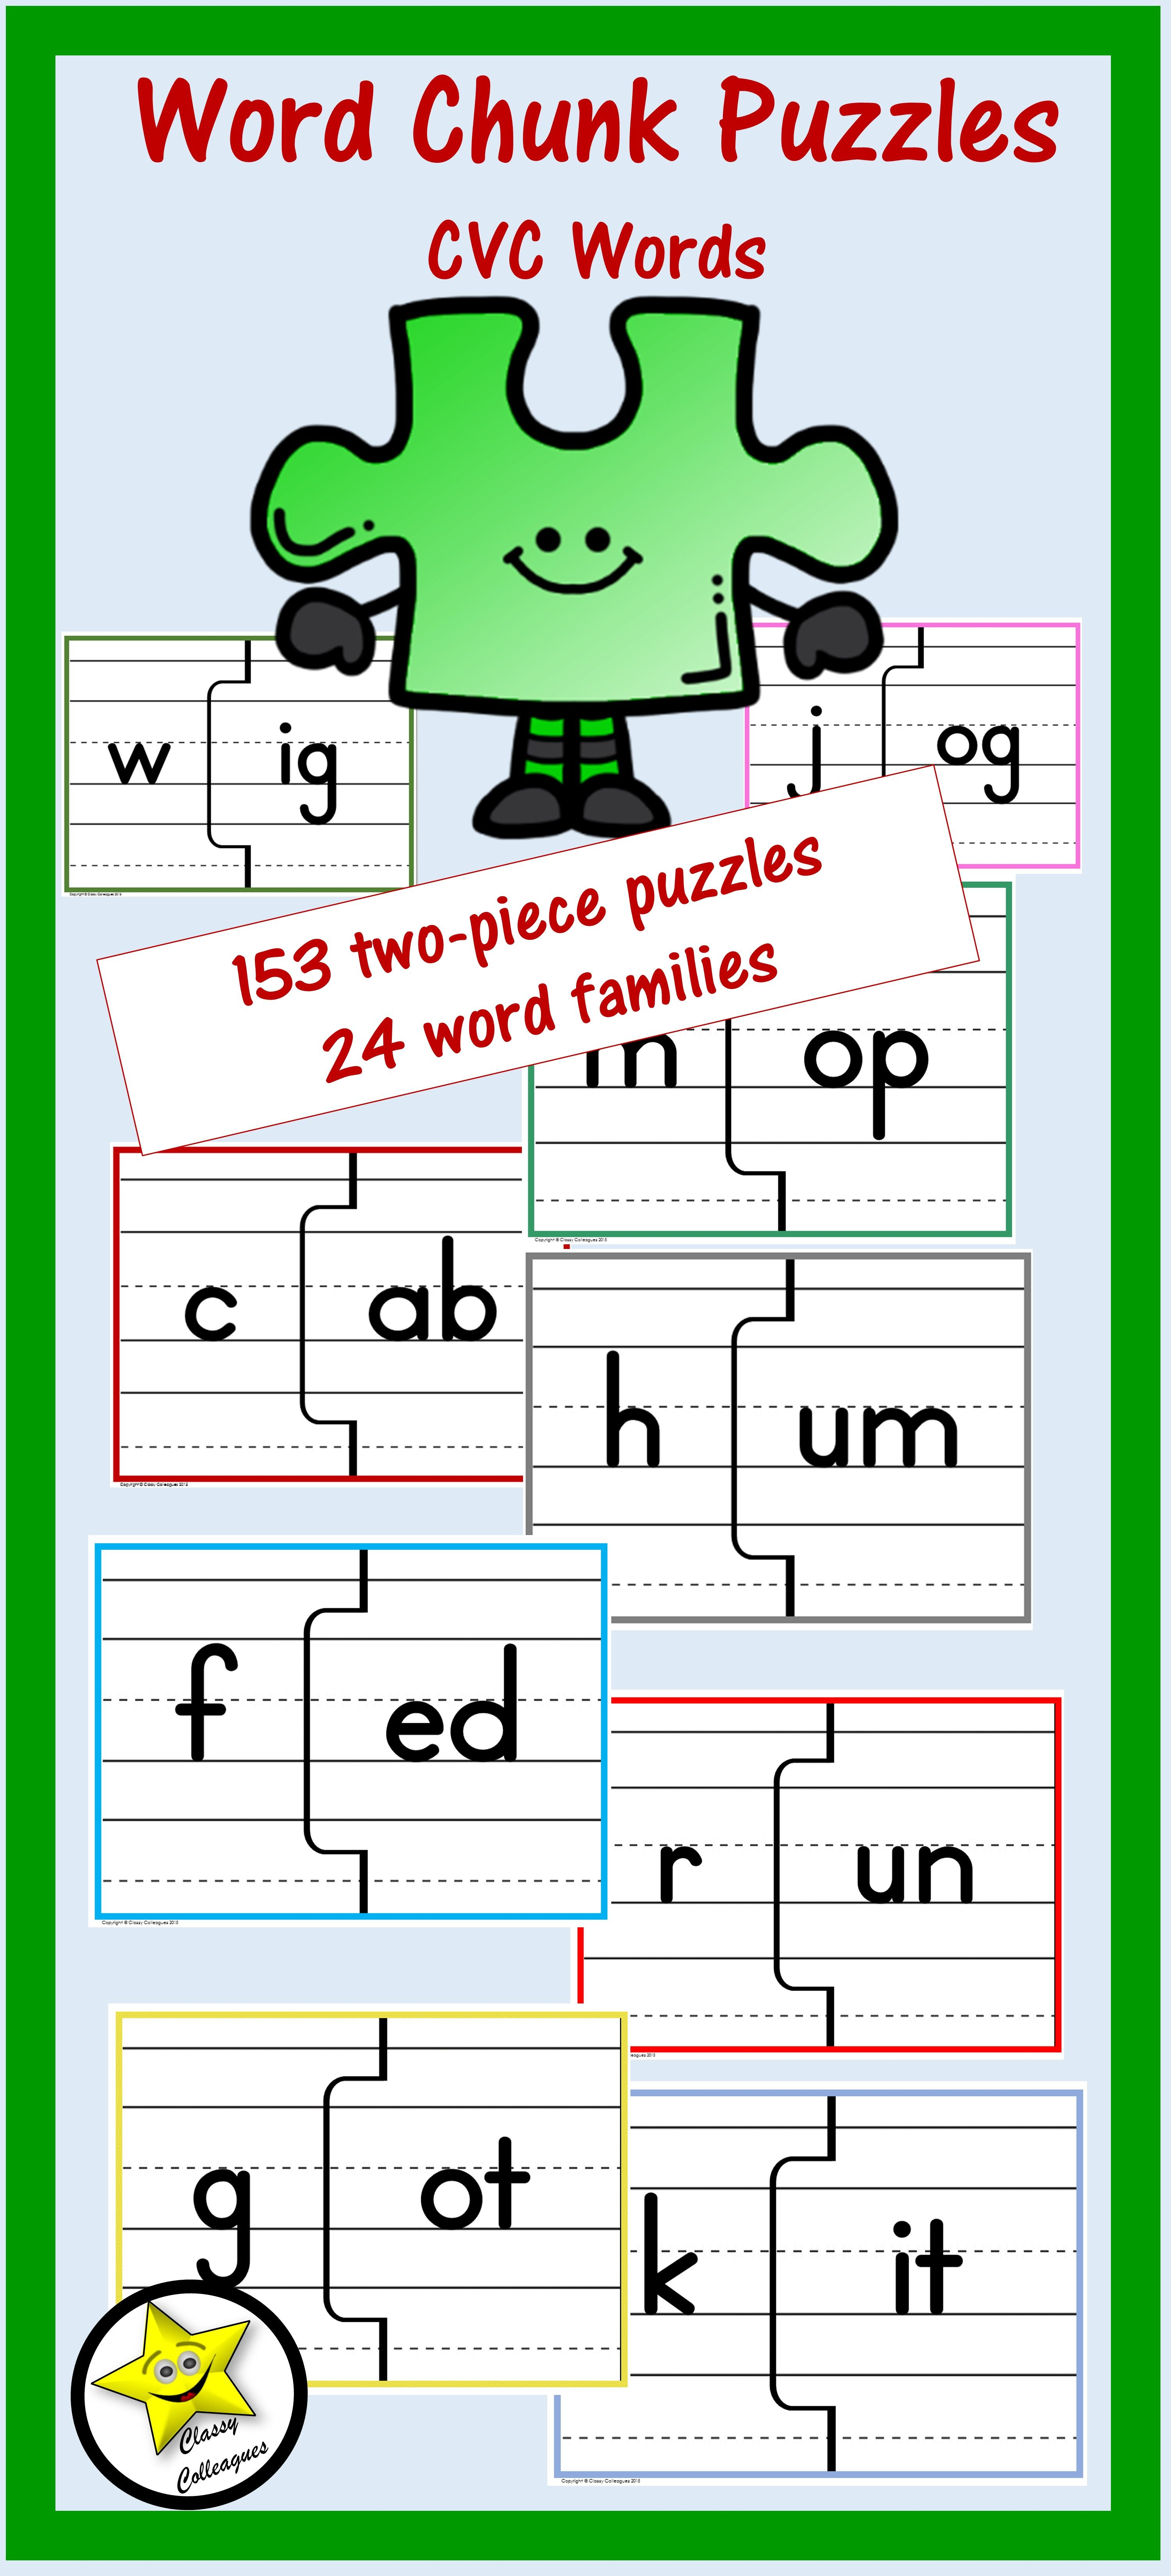 Word Chunk Puzzles